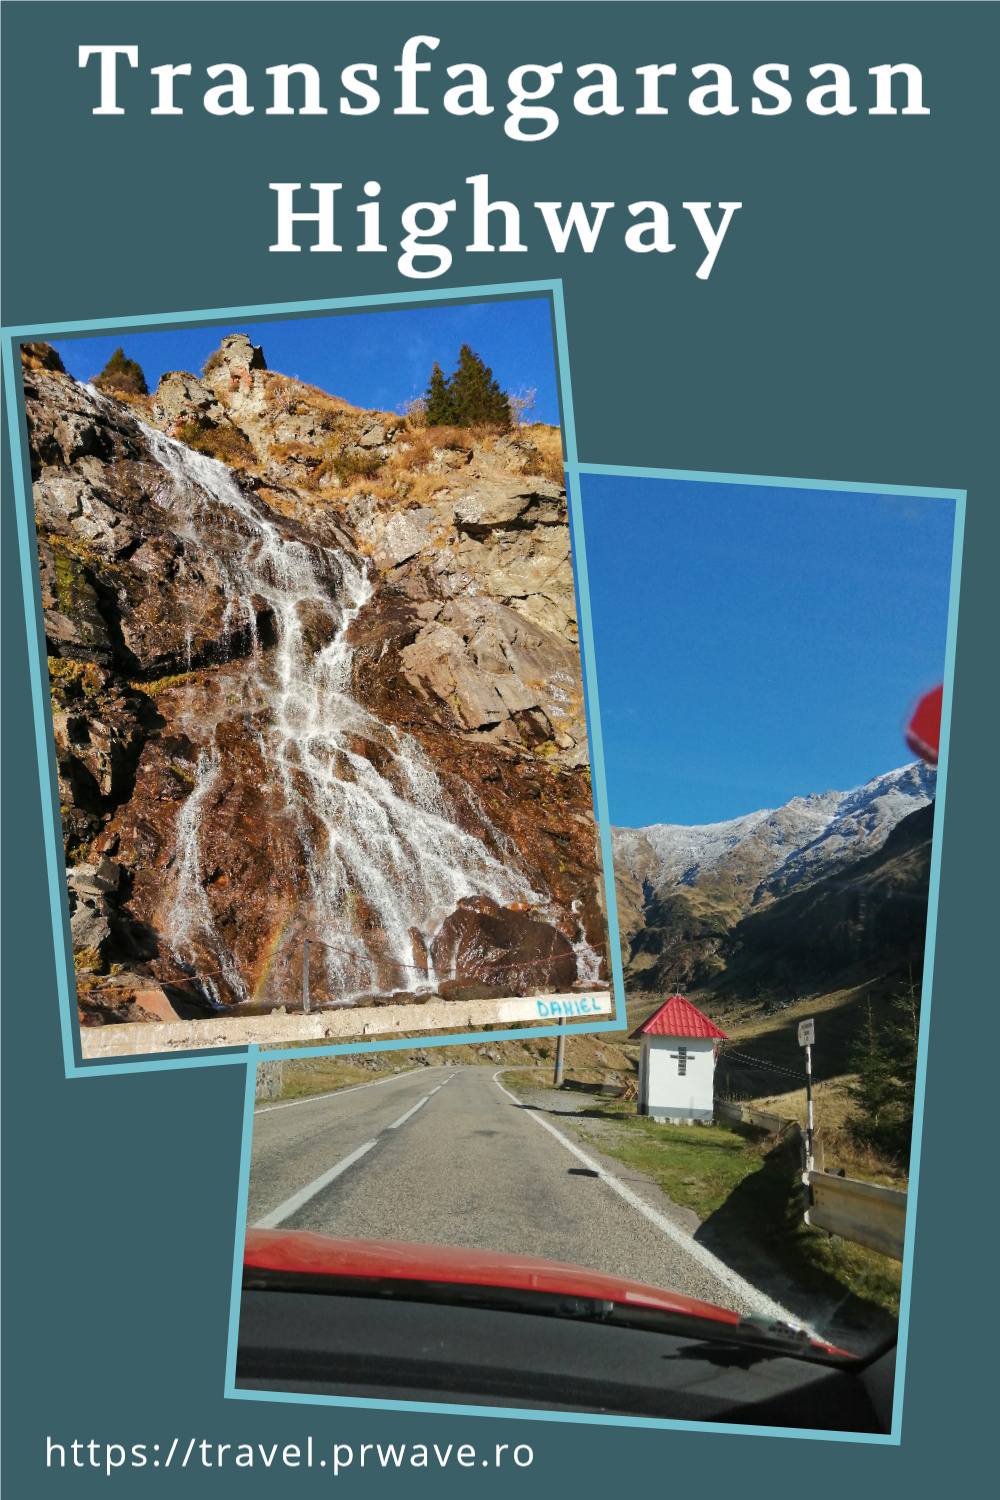 Transfagarasan highway tips and tricks. This Transfagarasan travel guide presents you the best time to visit the Transfagarasan, the best stops on the Transfagarasan and, of course, the Transfagarasan weather. Read the article about the Transfagarasan road now #transfagarasan #transfagarasanroad #transfagarasanhighway #transfagarasanromania #romania #romaniatravel #europe #roadtrip #romaniaroadtrip #travelmomentsintime #visitromania